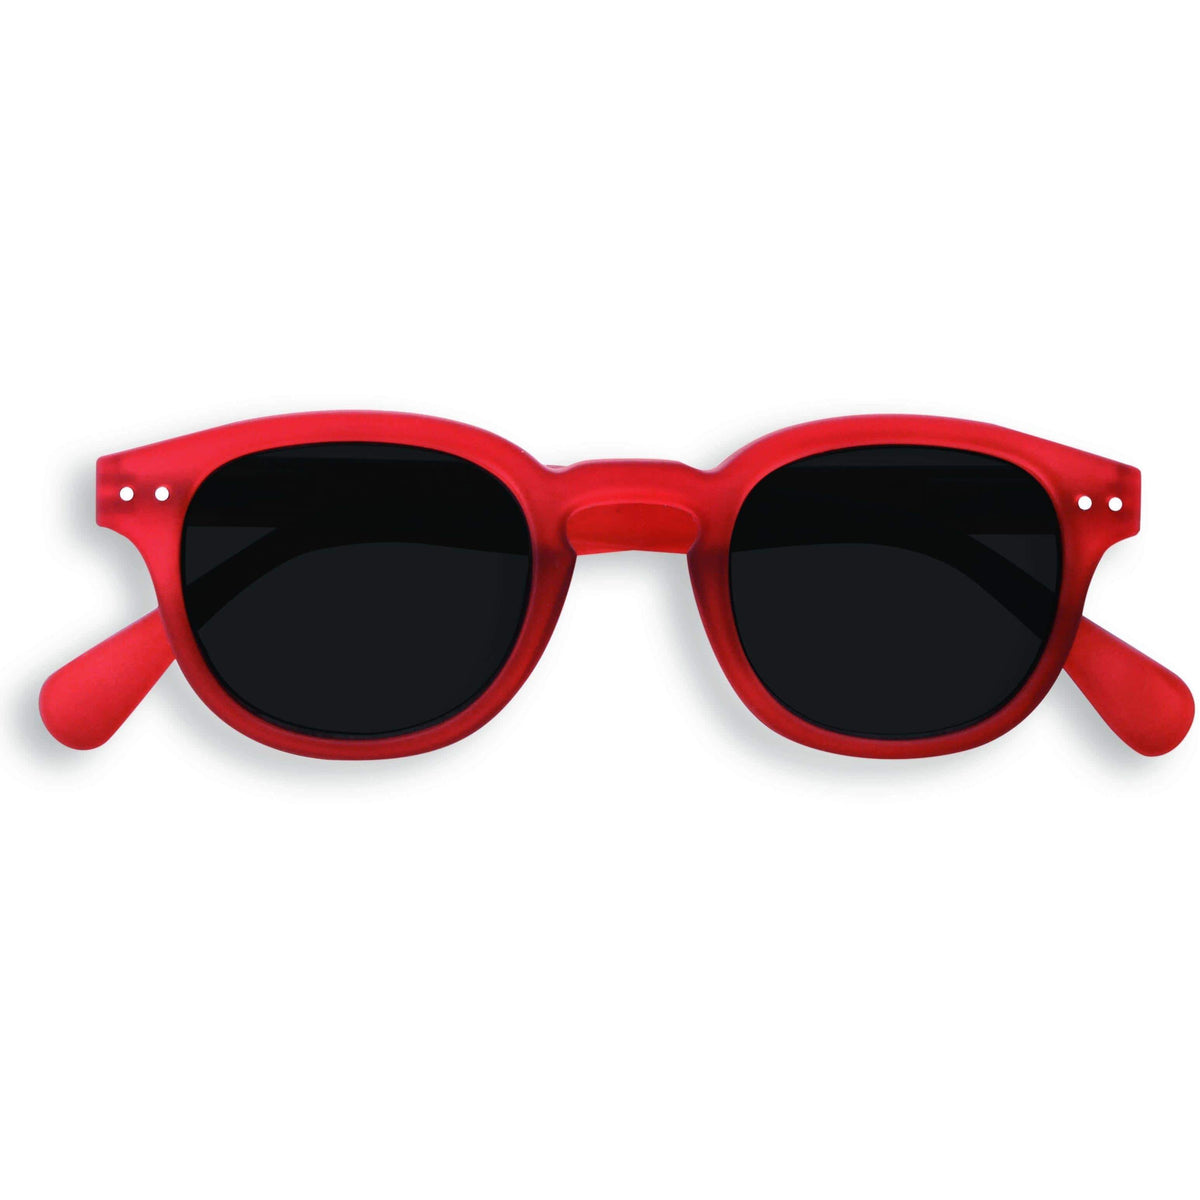 Izipizi Unisex Red Crystal Sunglasses Soft Grey Lenses